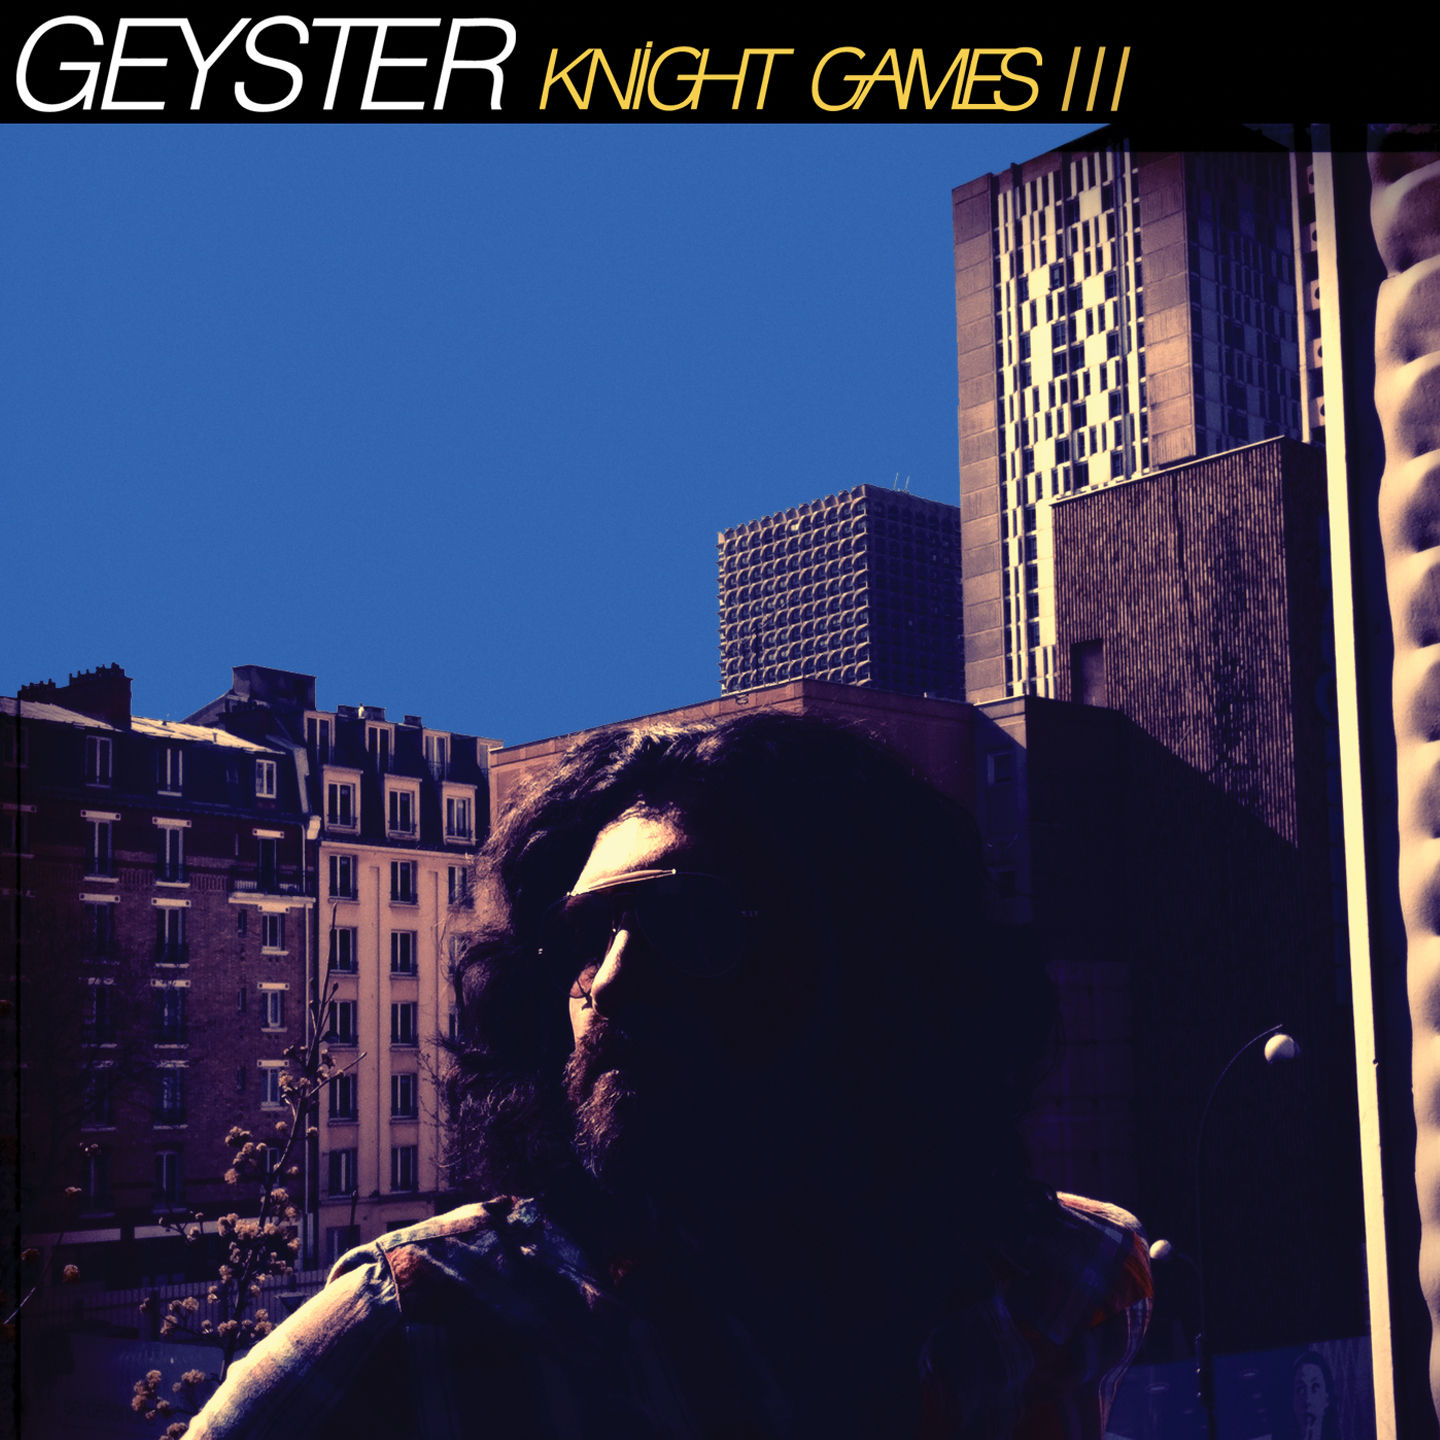 Geyster - Knight Games III